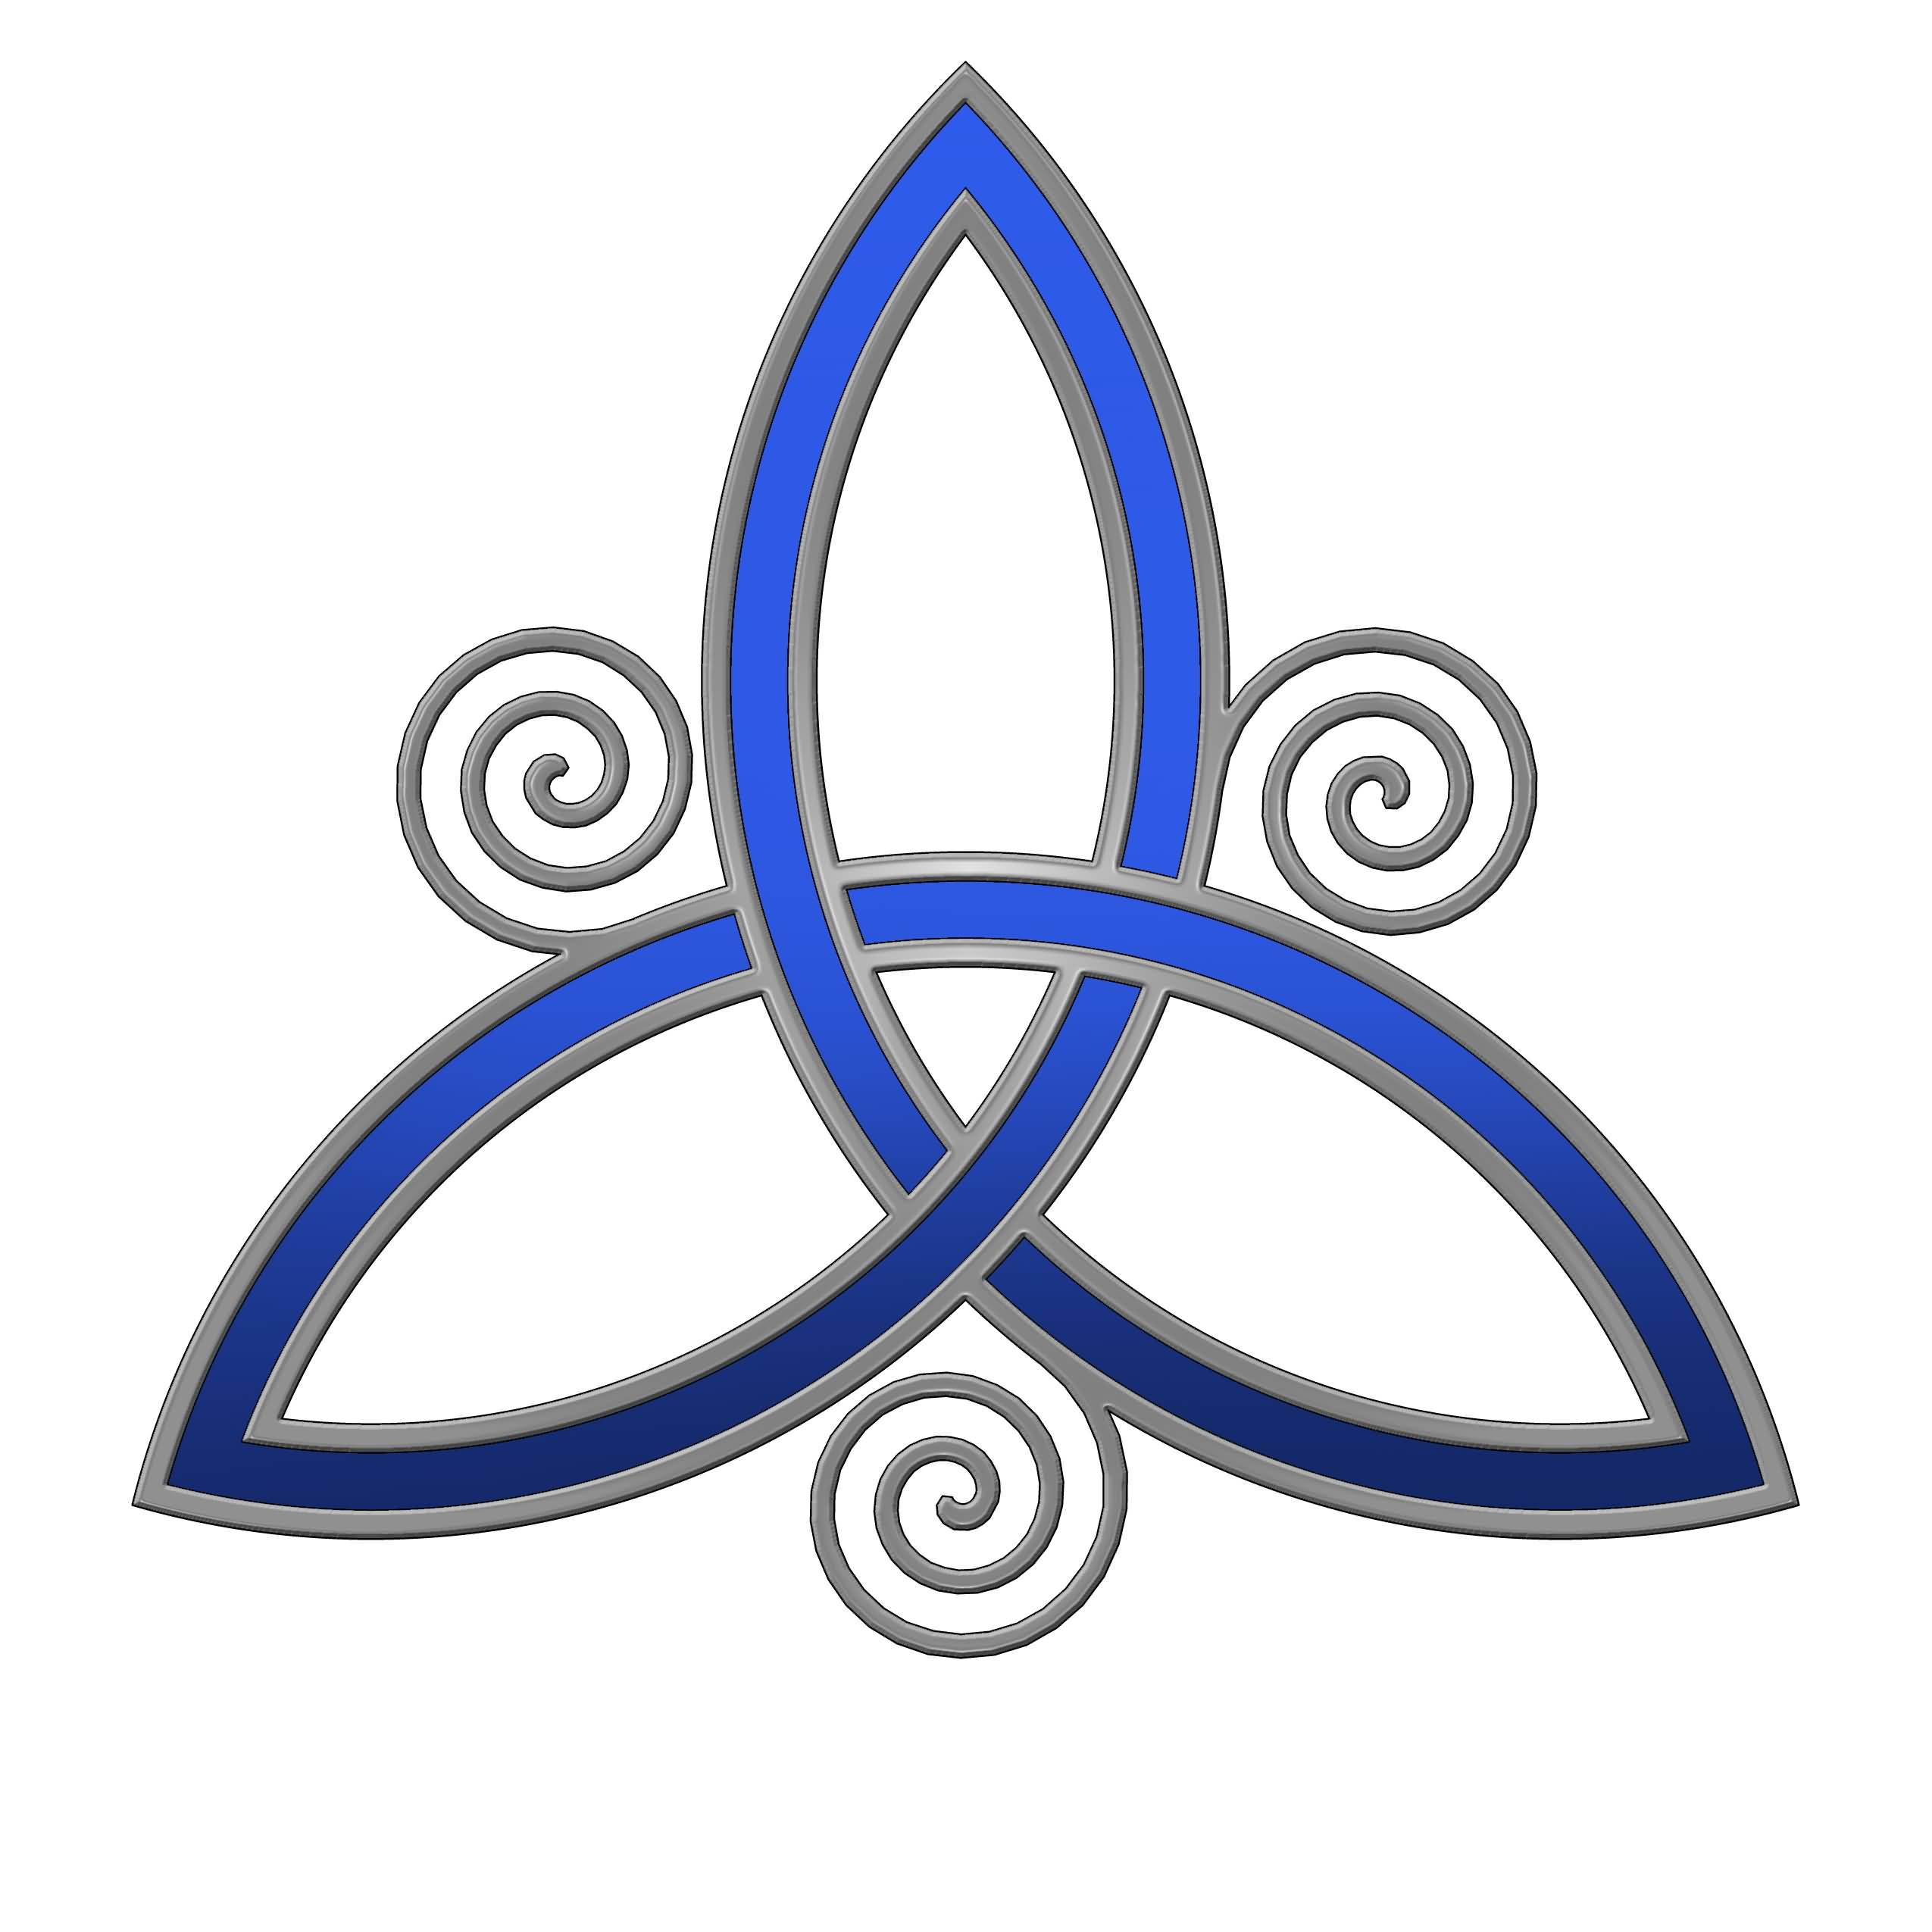 Trinity Irish Knot Tattoo Design